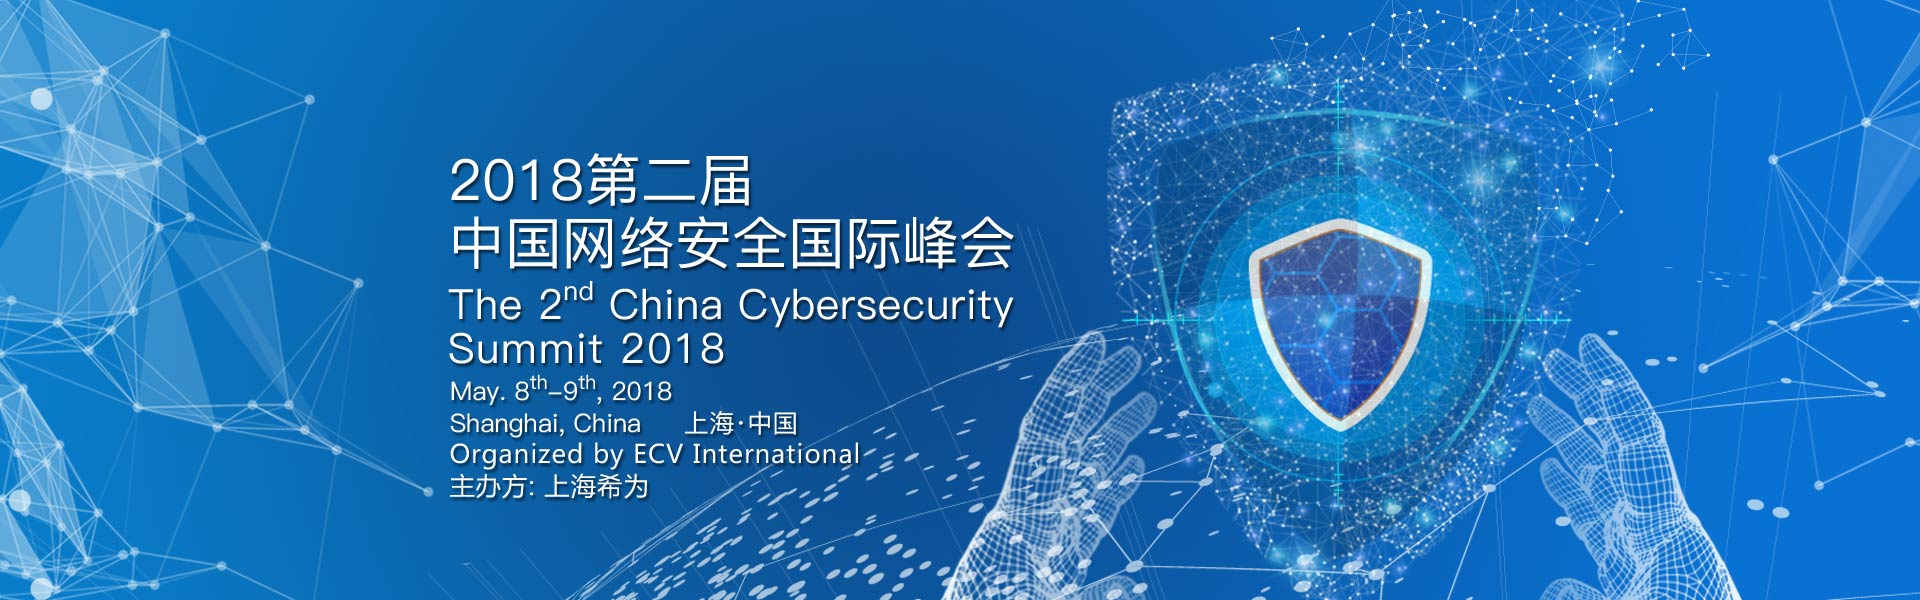 The 2nd China Cybersecurity Summit 2018